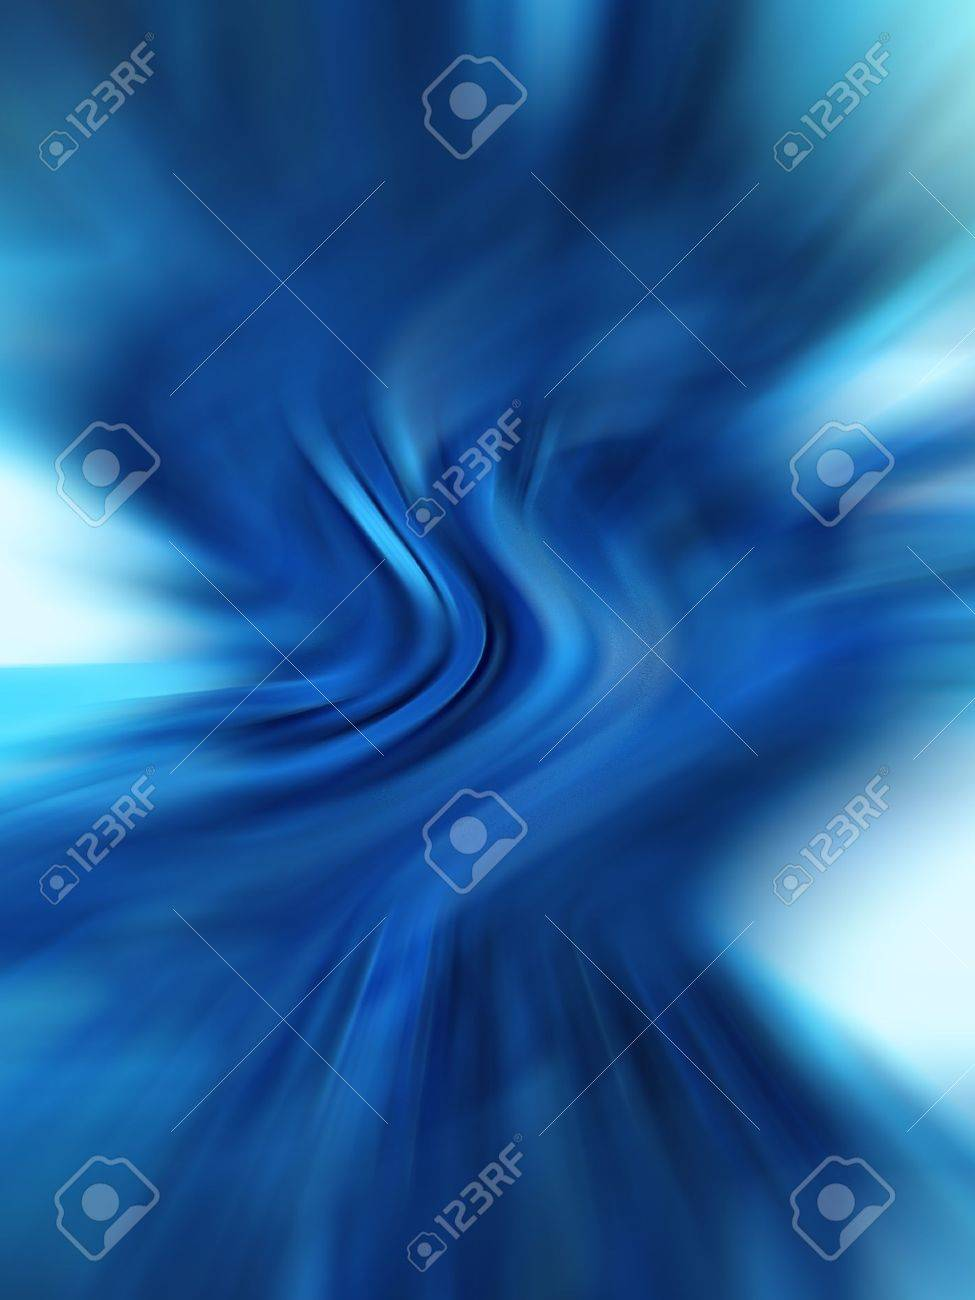 Vertical blue abstract blurs background Stock Photo - 13690149